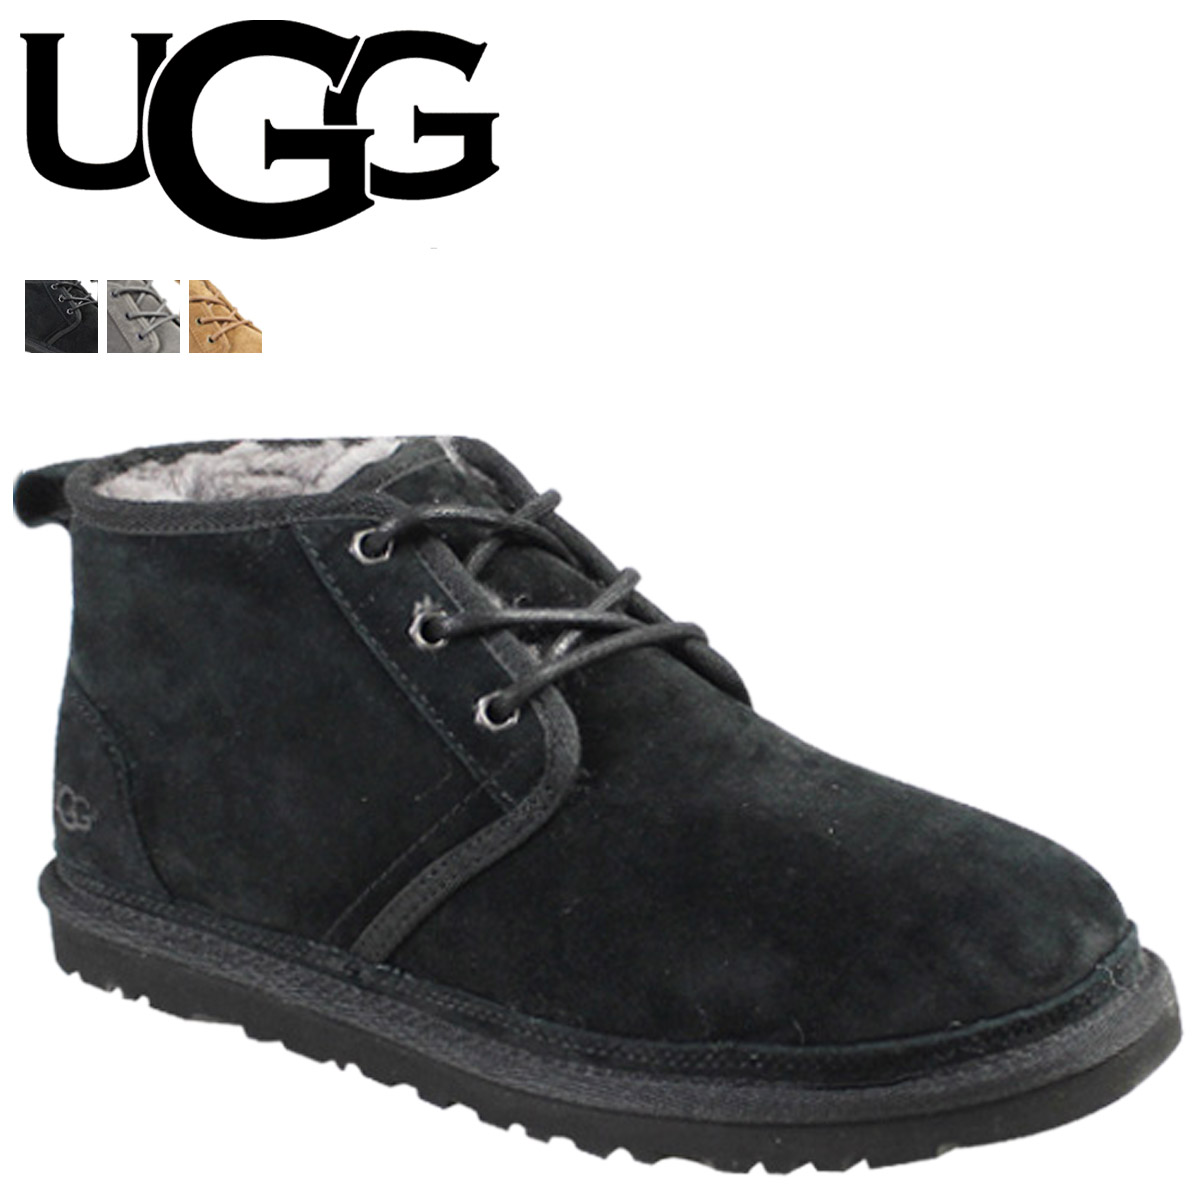 Point 2 x UGG UGG mens new Mel boots MENS NEUMEL Shearling Sheepskin 2014 years new 3236 3 color [11 / 26 new stock] [regular] 02P30Nov14